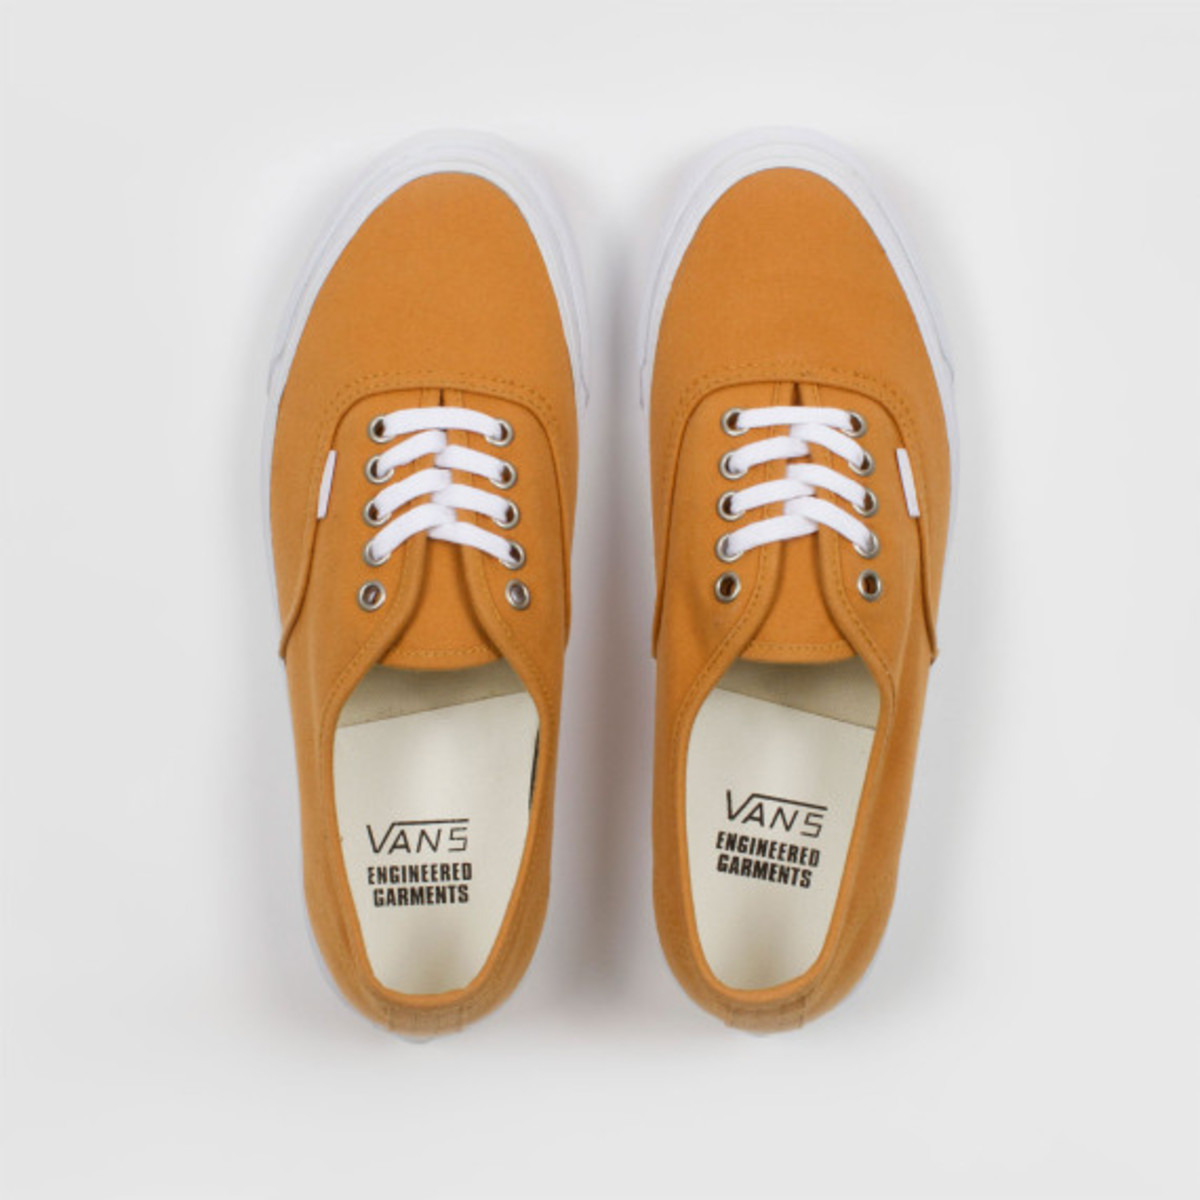 engineered-garments-vault-by-vans-collection-launch-at-nepenthes-02